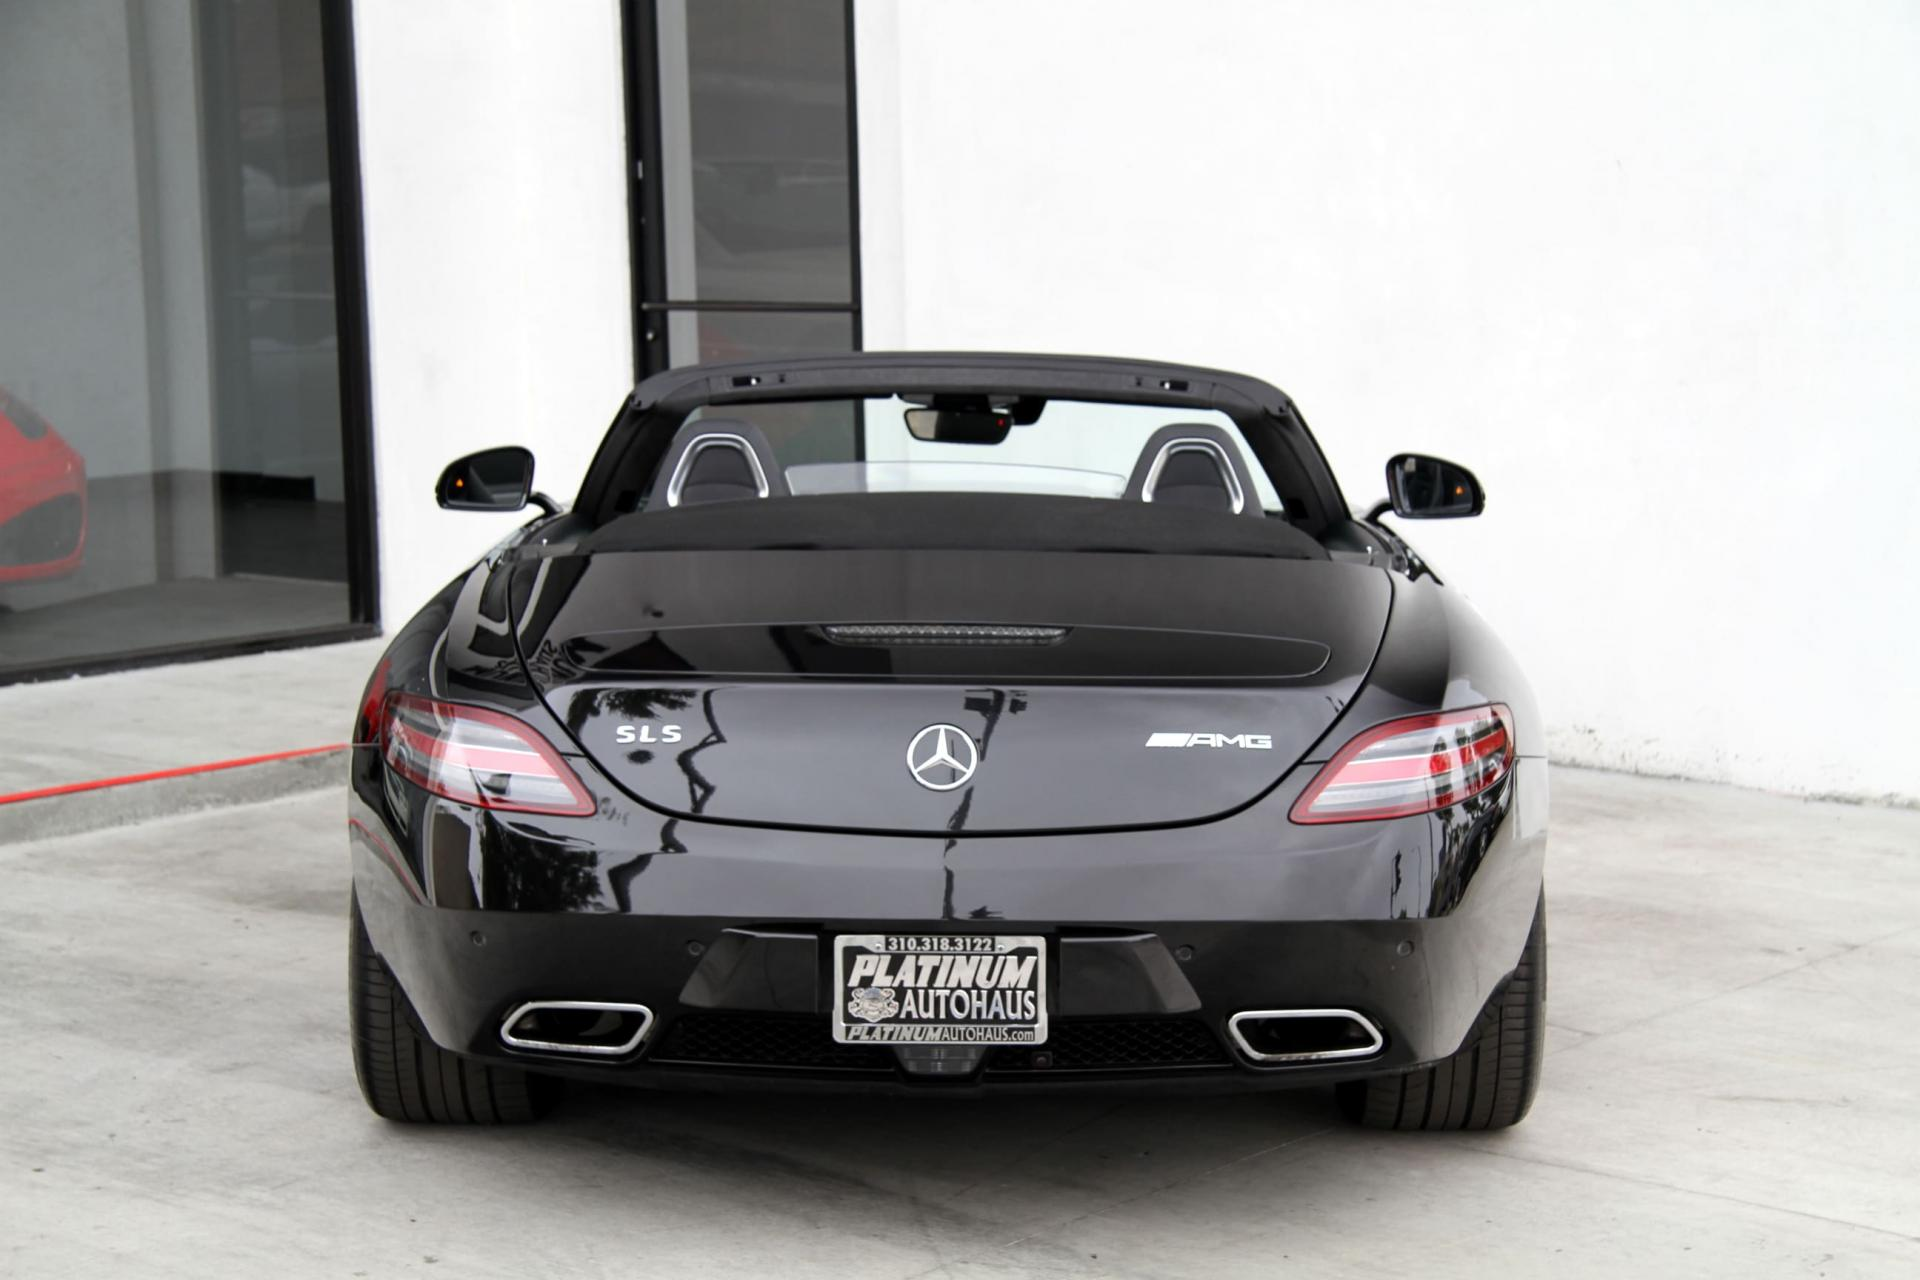 2012 mercedes benz sls 63 amg stock 5903 for sale near for Mercedes benz sls amg for sale